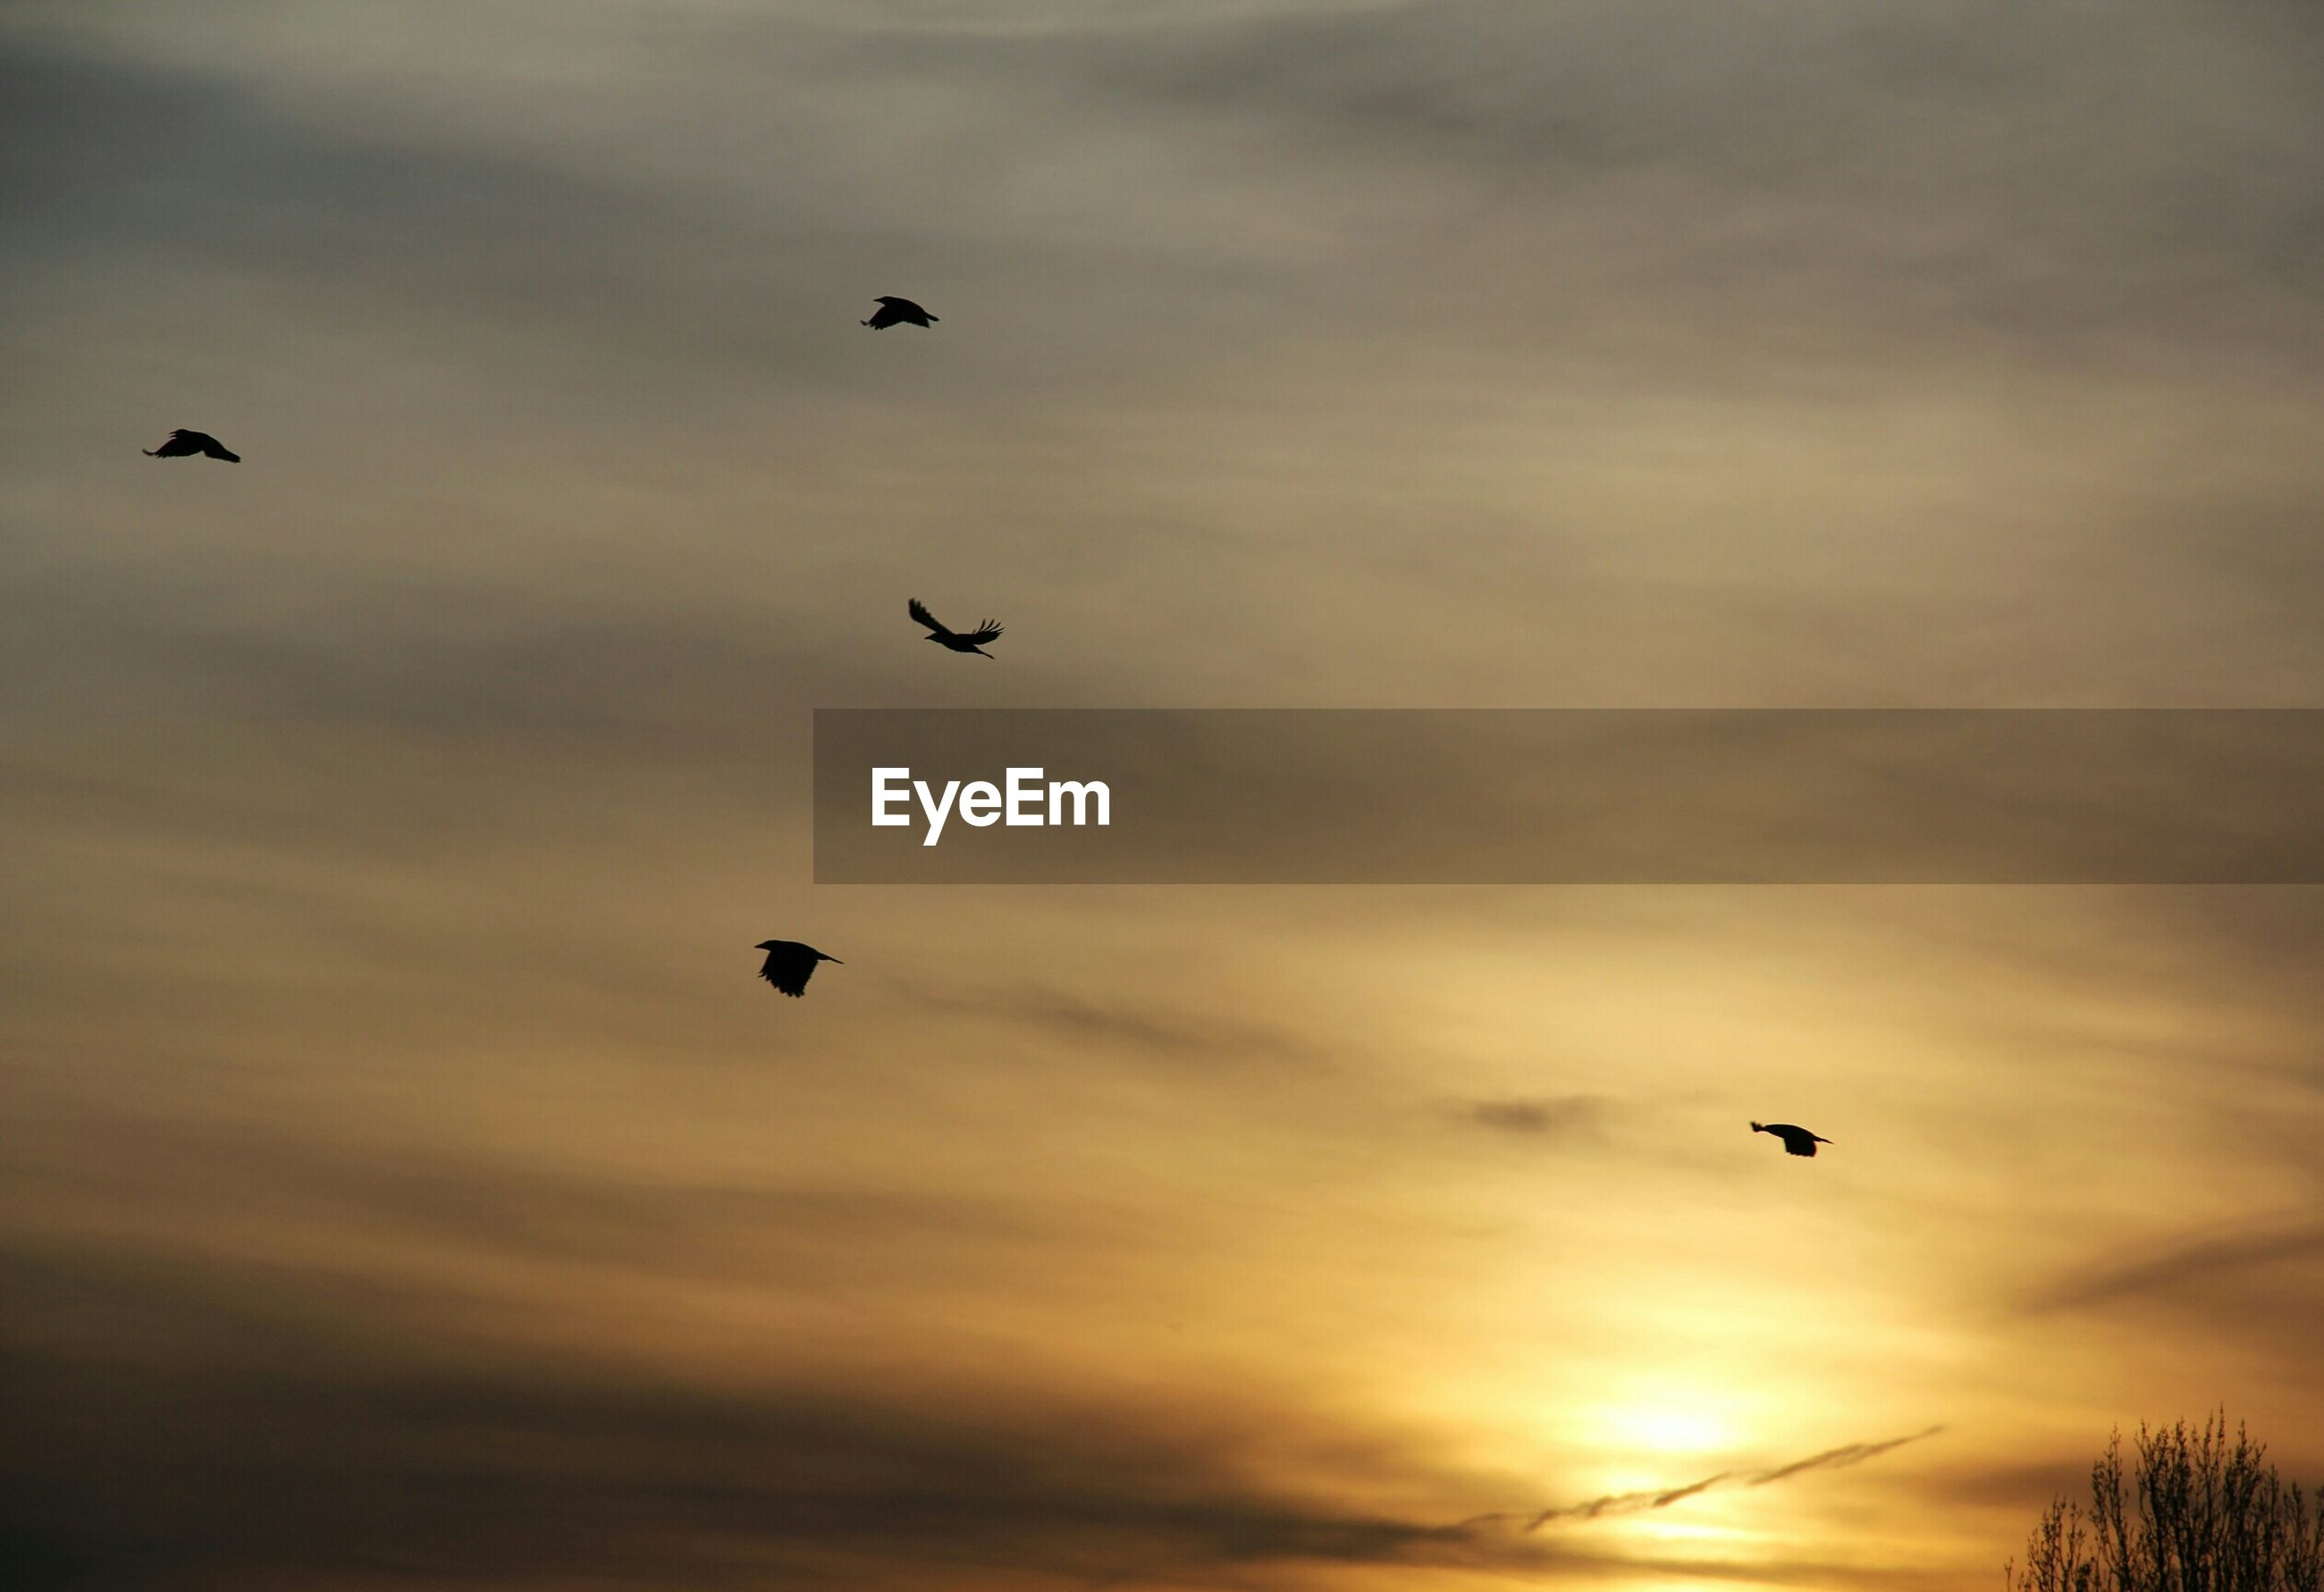 bird, flying, animal themes, animals in the wild, low angle view, wildlife, sunset, sky, silhouette, mid-air, cloud - sky, spread wings, beauty in nature, nature, flock of birds, orange color, scenics, cloud, tranquility, cloudy